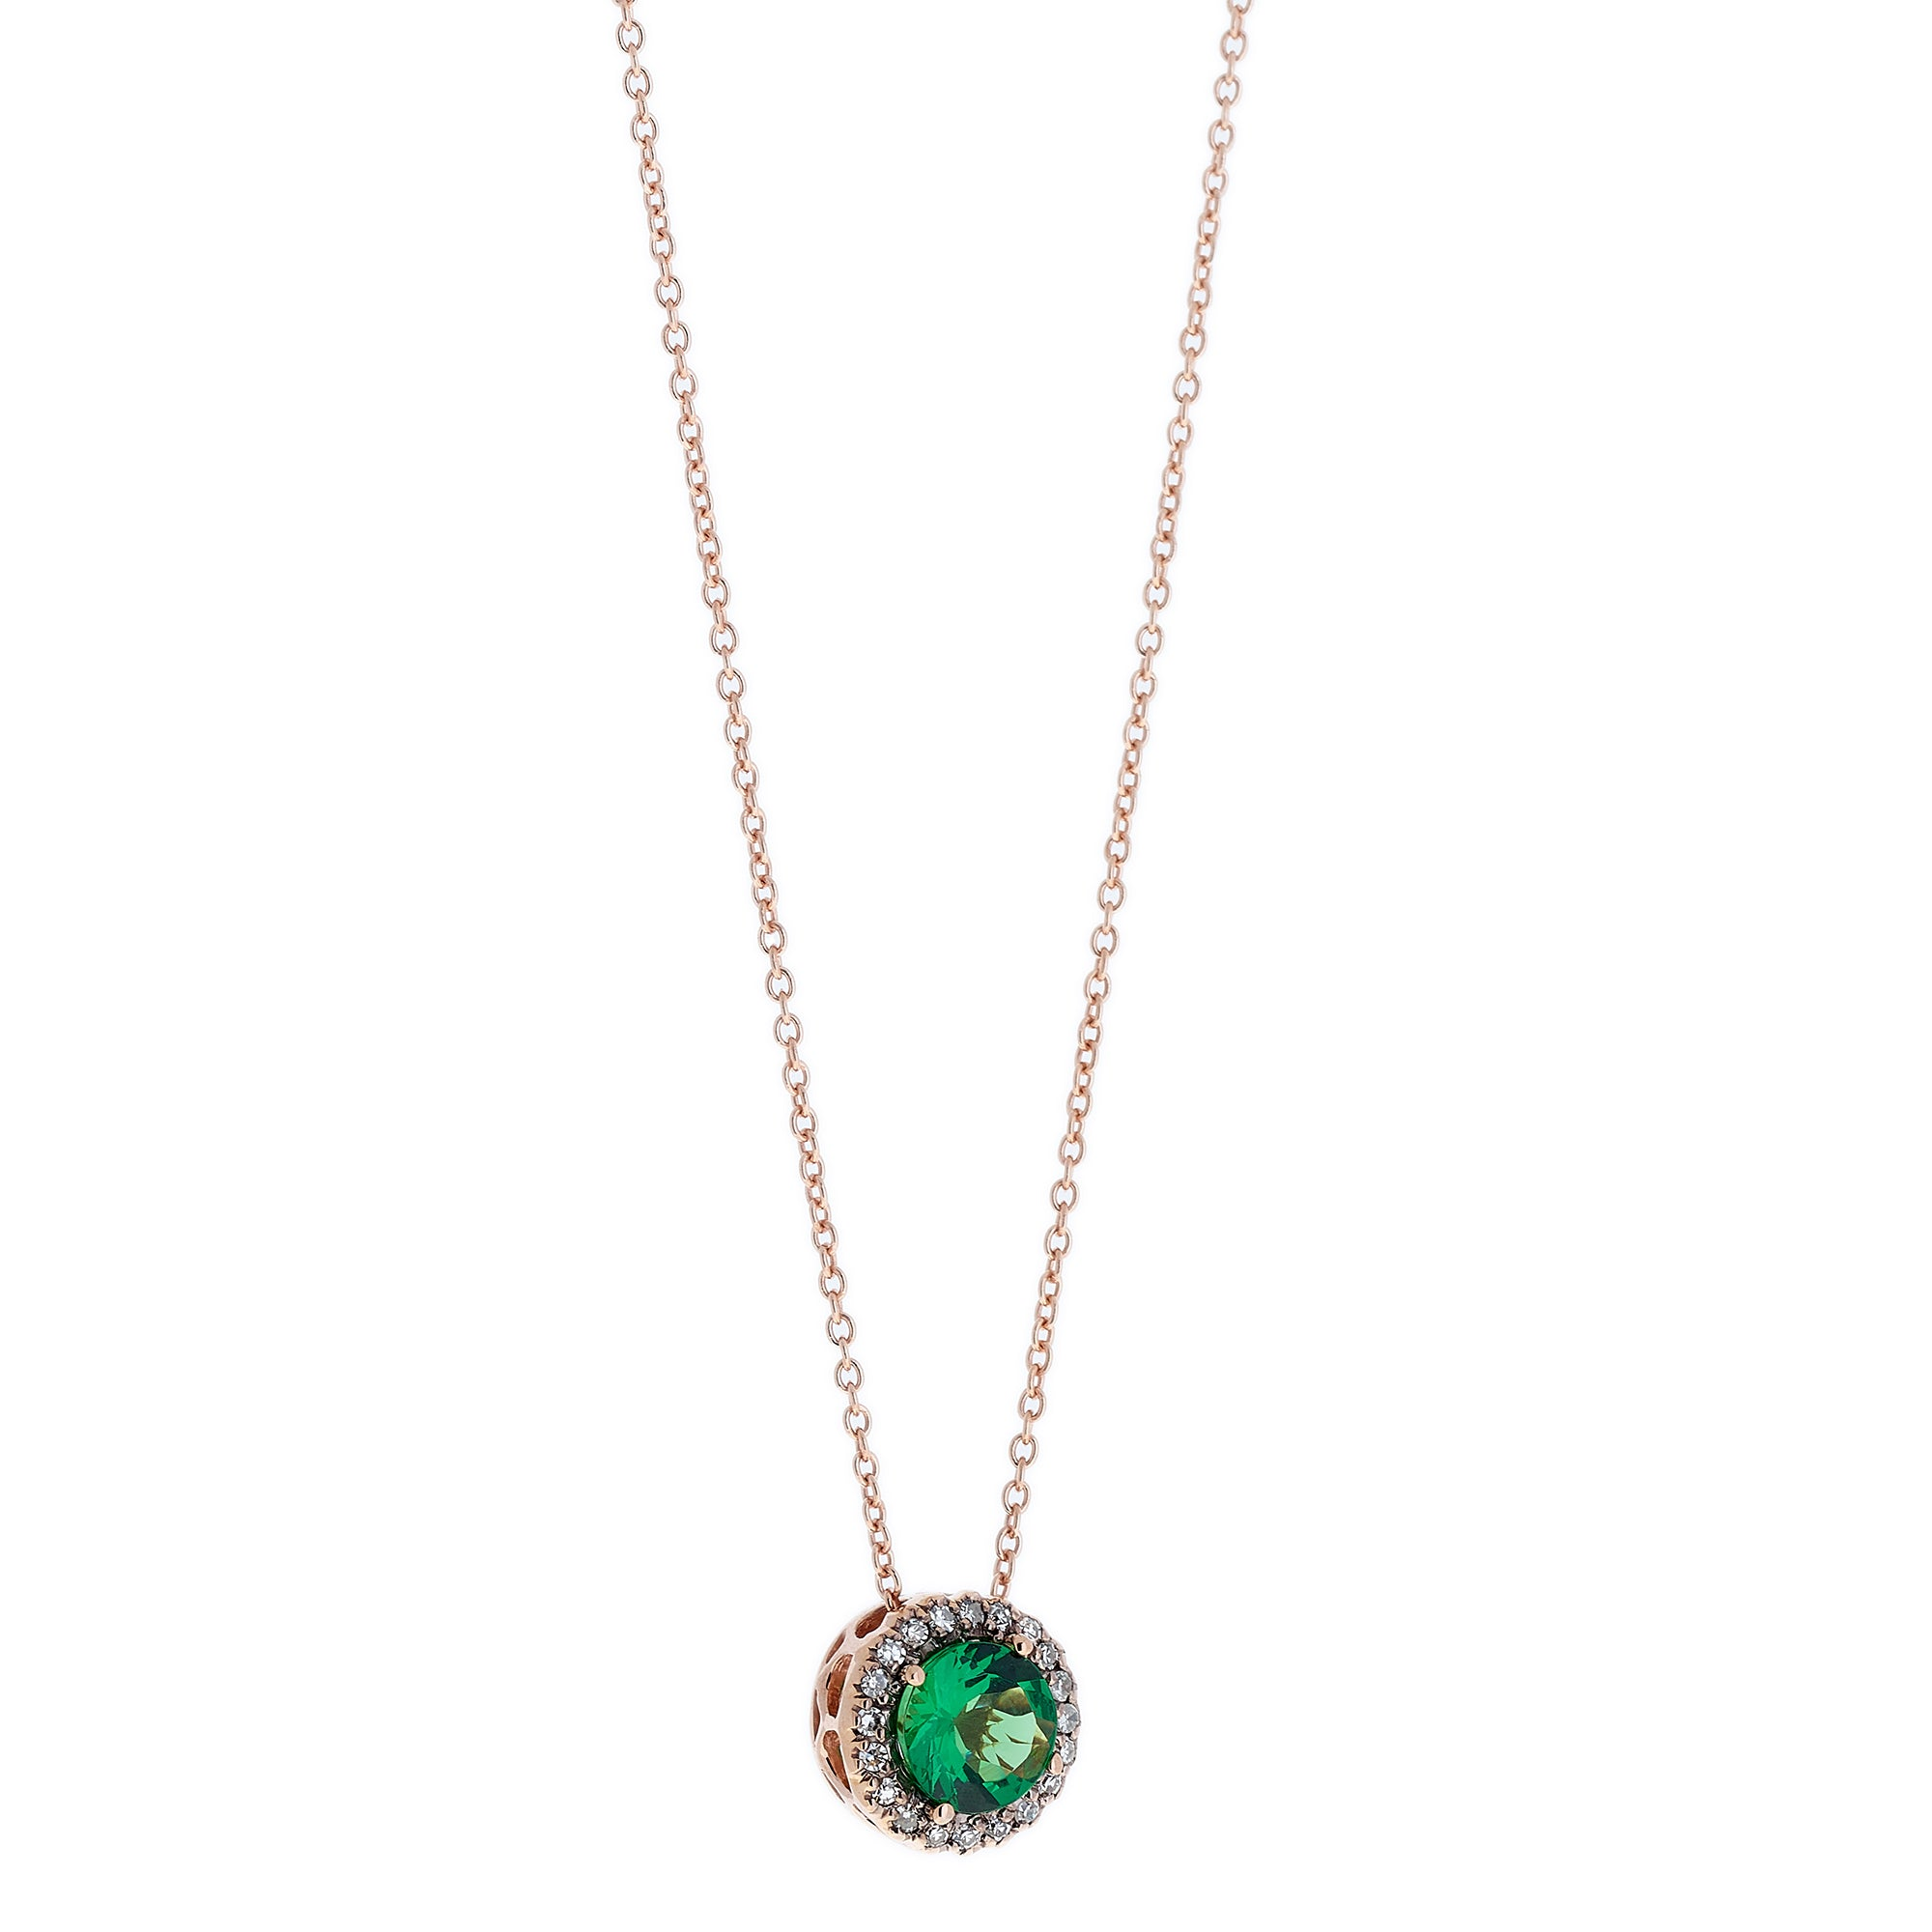 Tsavorite Necklace by Selim Mouzannar for Broken English Jewelry